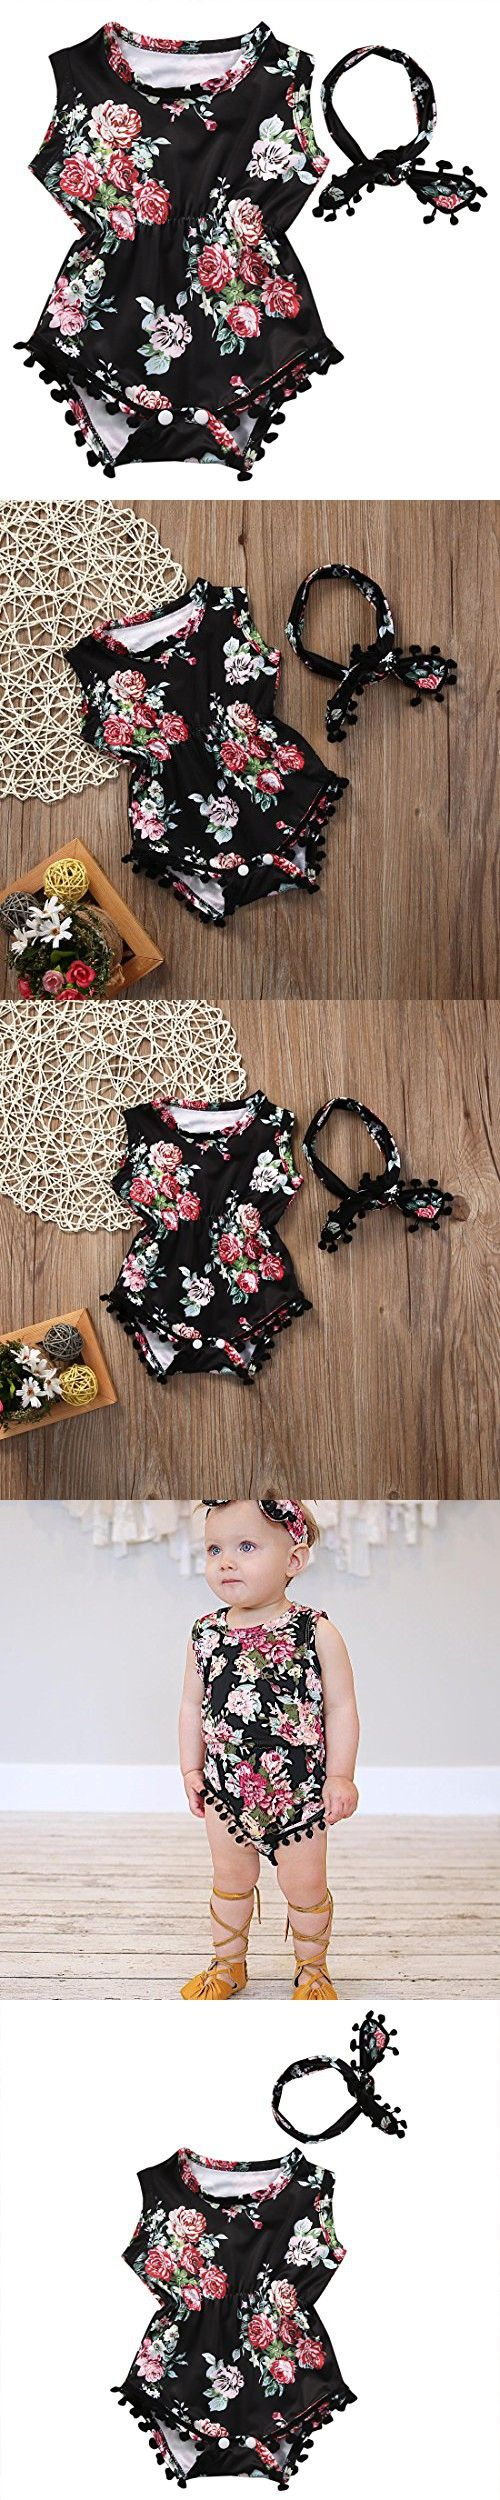 Cute Adorable Floral Romper Baby Girls Sleeveless Tassel Romper One-pieces +Headband Sunsuit Outfit Clothes (18-24 Months, Black)